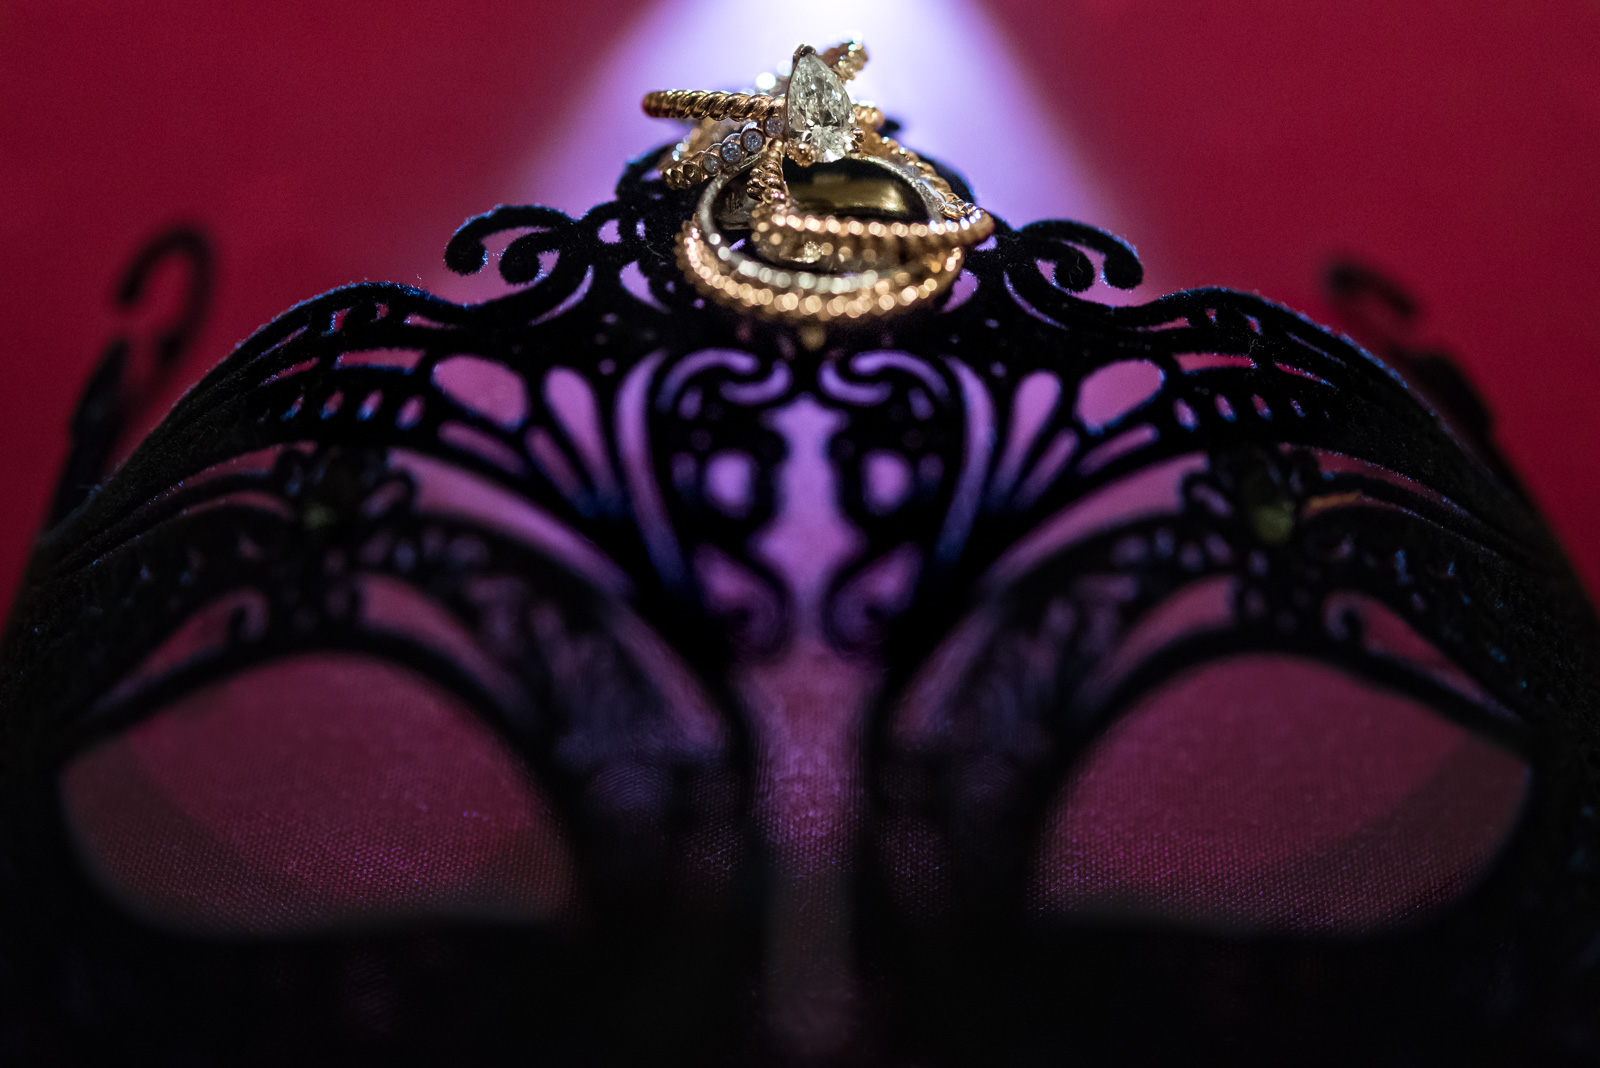 wedding rings on a black lace mask at masquerade wedding at ubc boathouse in richmond bc - victoria wedding photographer